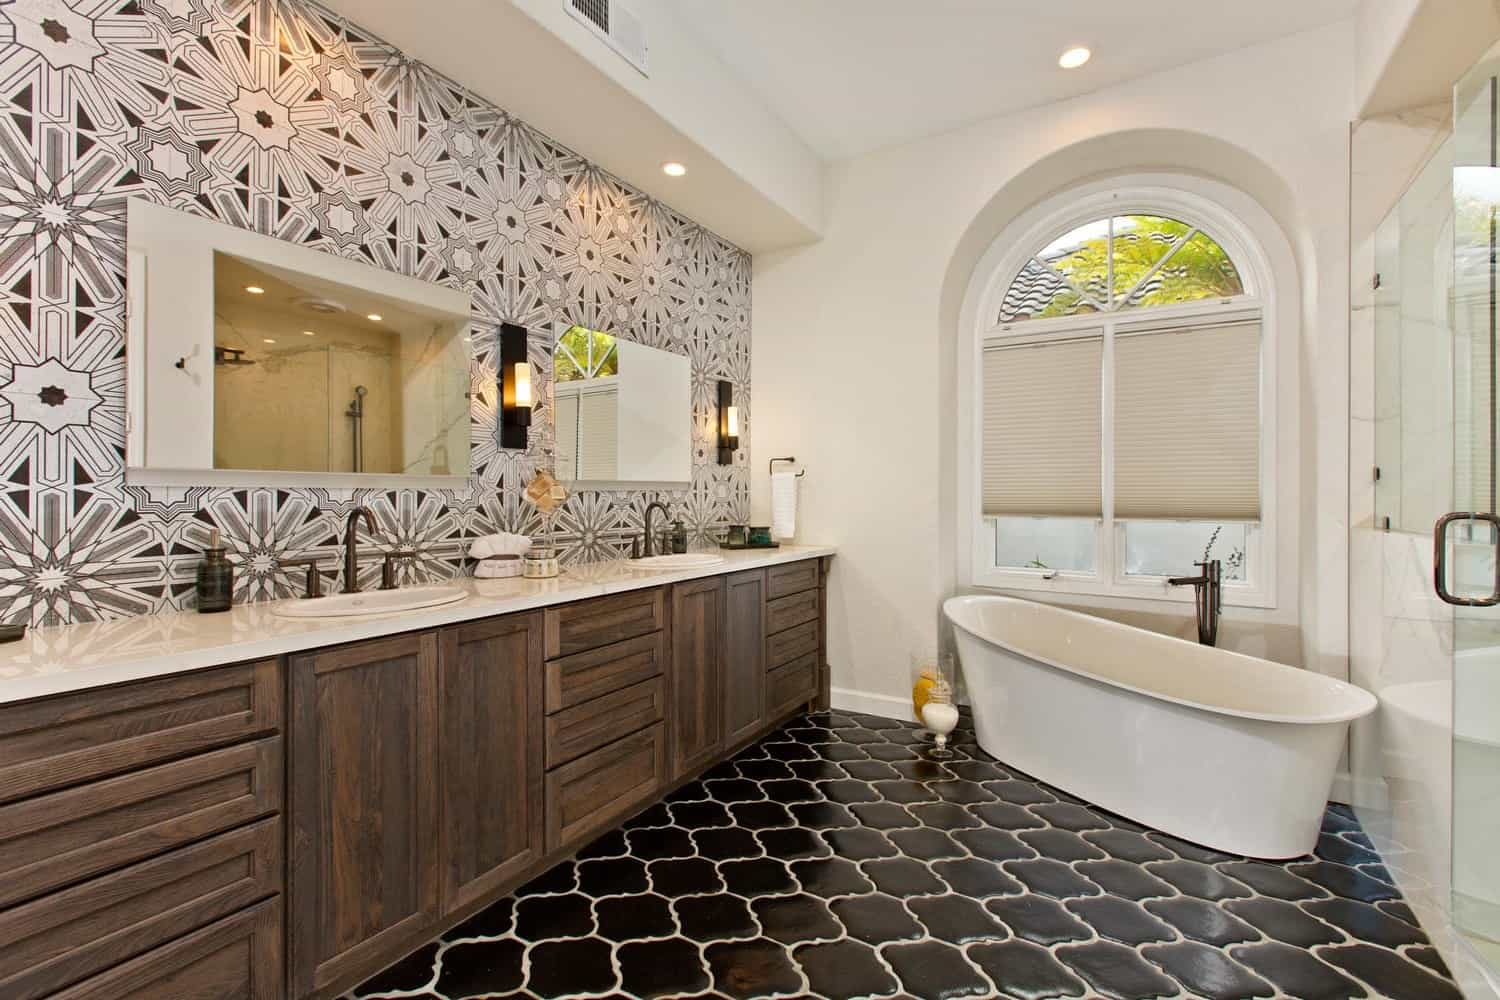 Black And White Tiled Wallpaper For Luxury Bathroom (View 10 of 10)